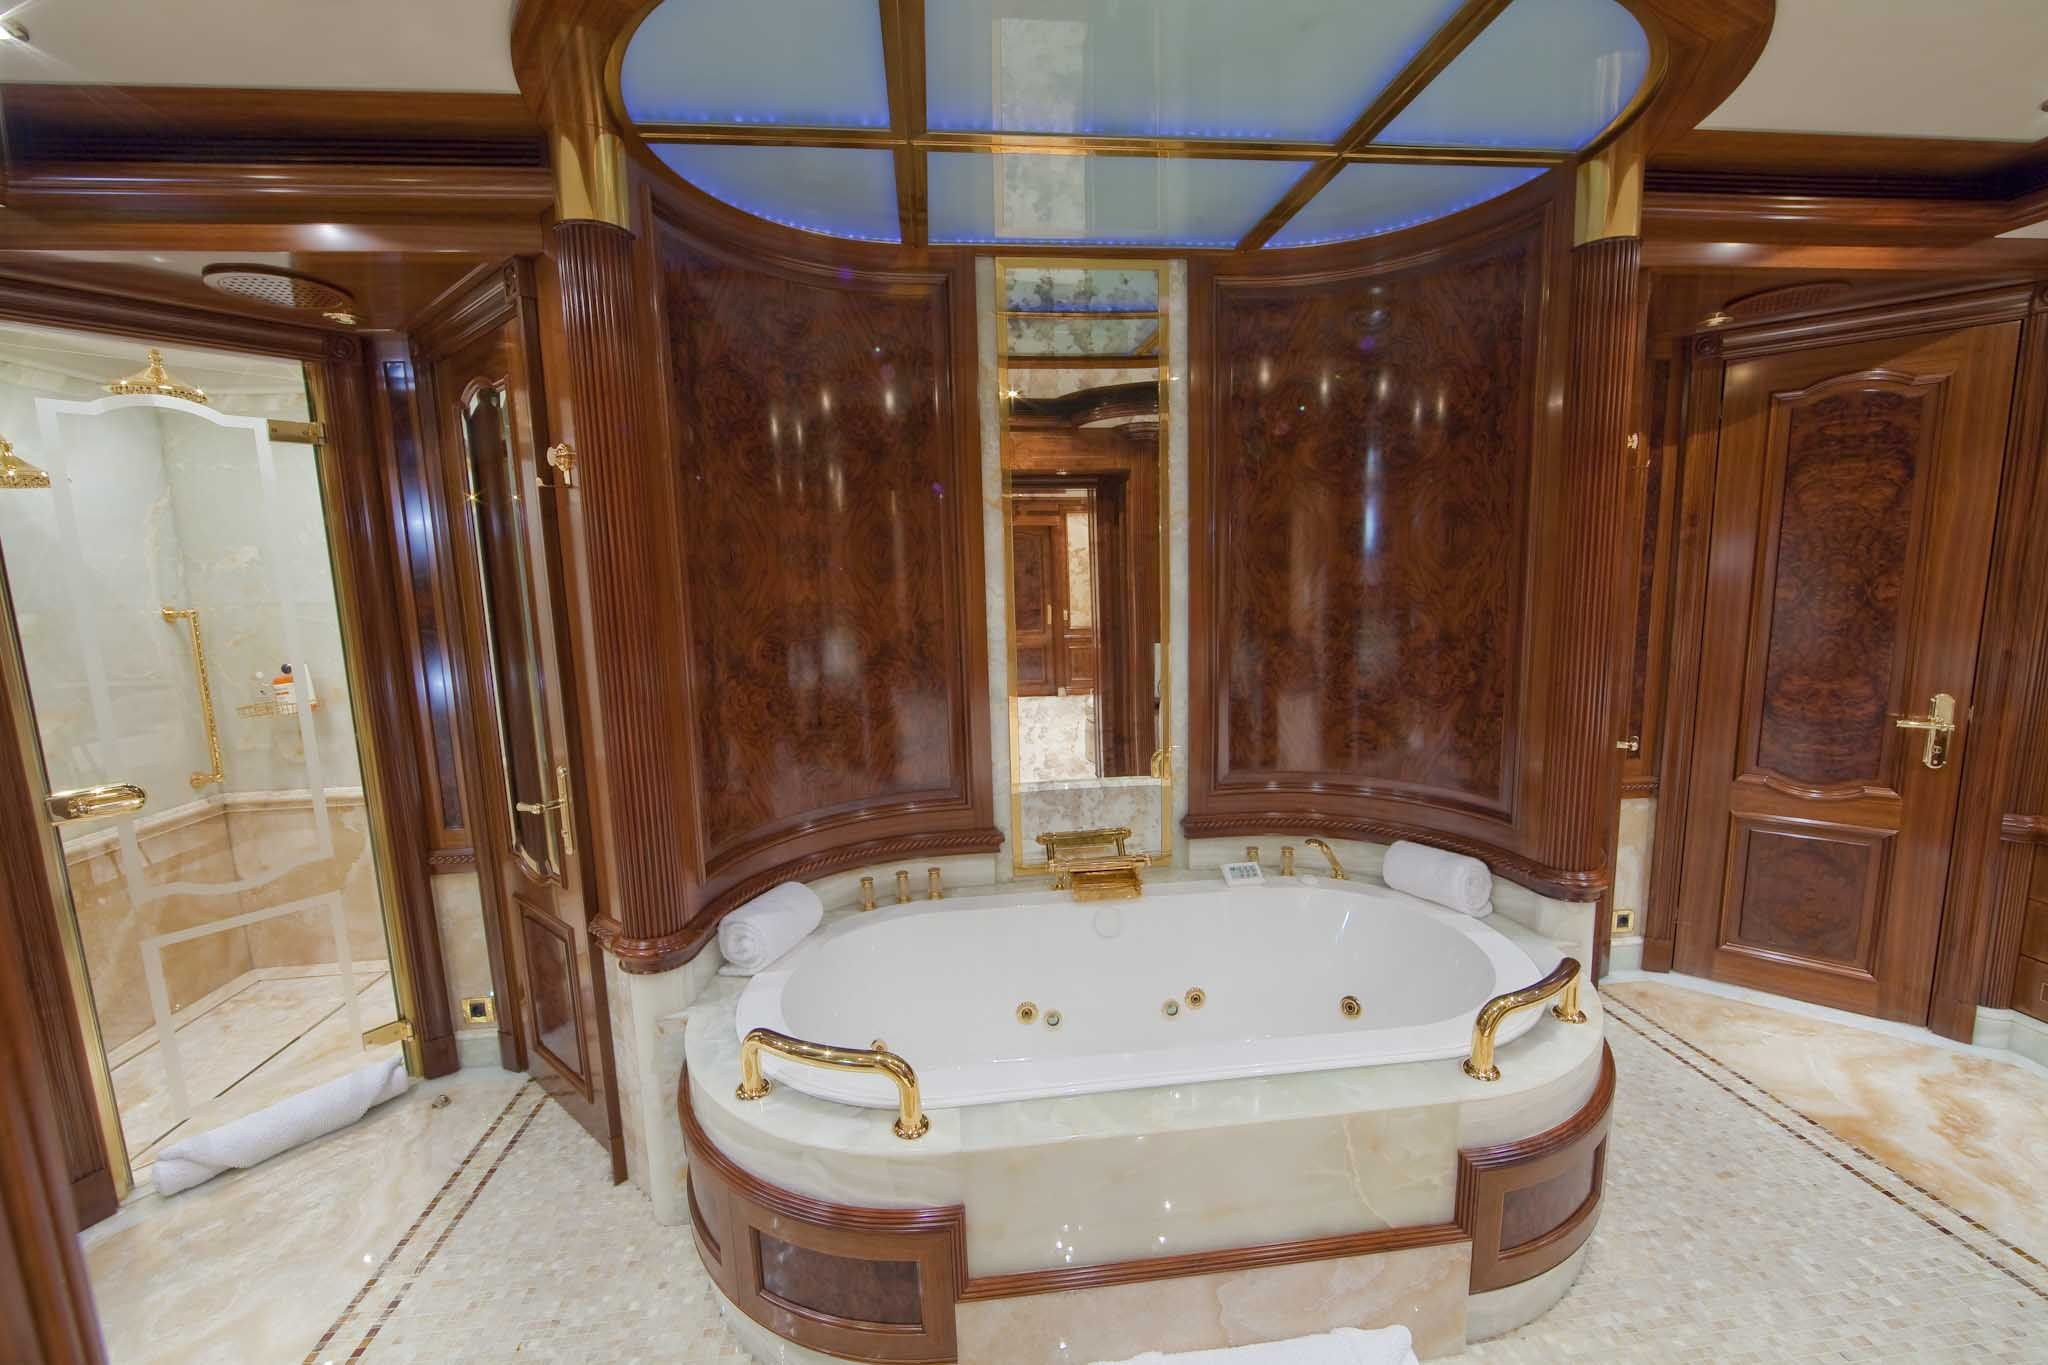 luxury bathrooms for the rich - Luxury Master Bathroom Suites